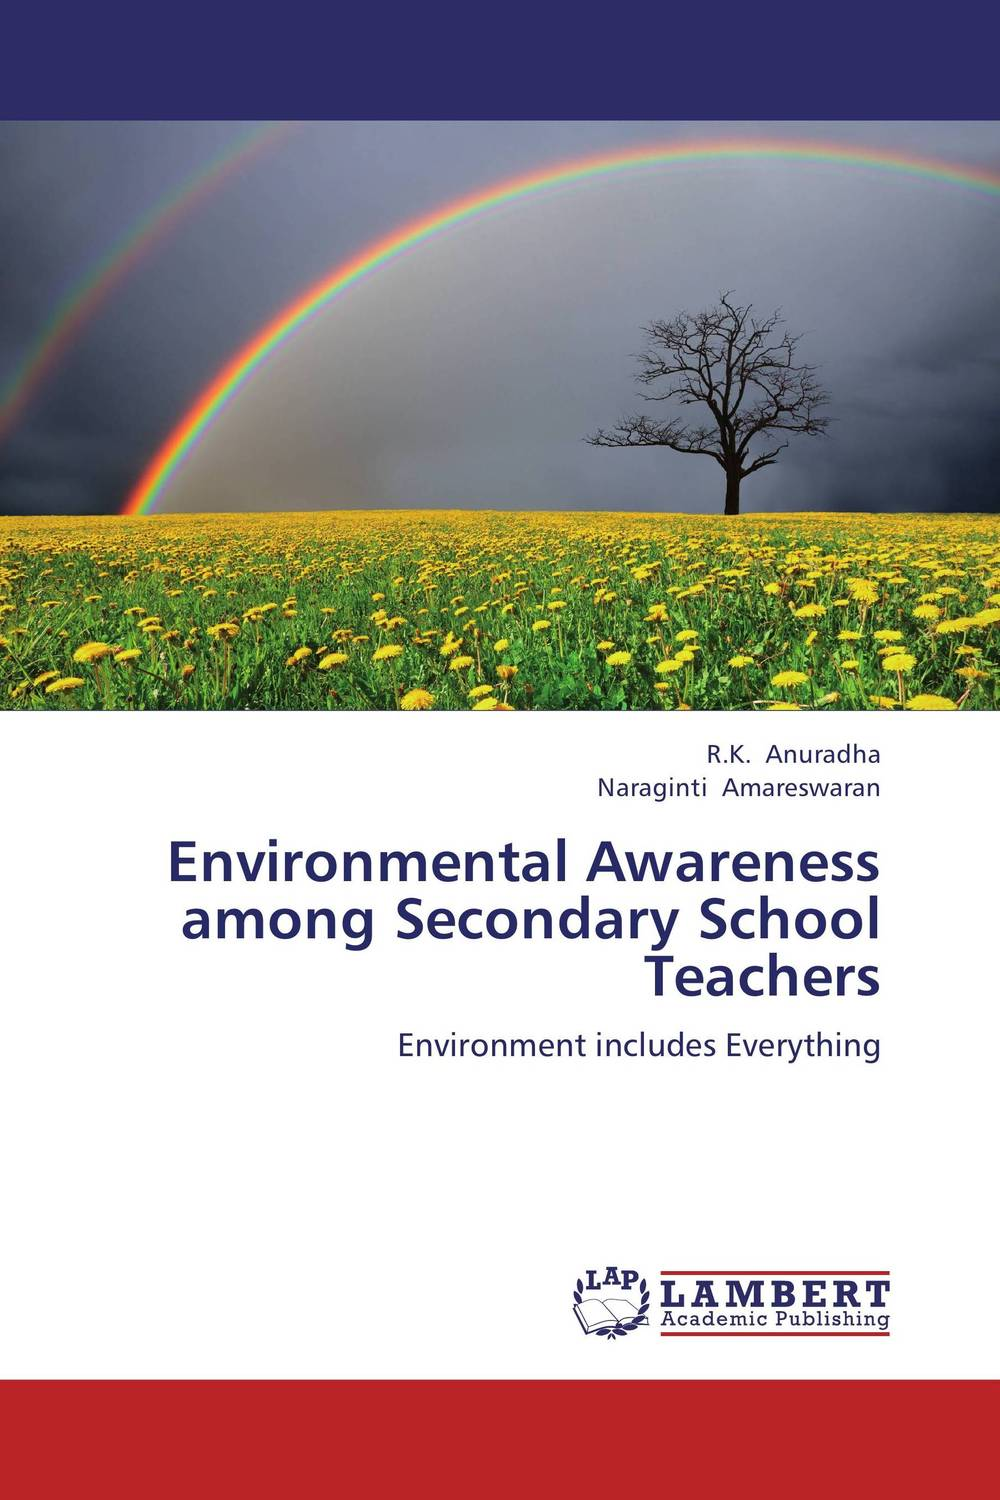 Environmental Awareness among Secondary School Teachers health awareness among continuing education workers